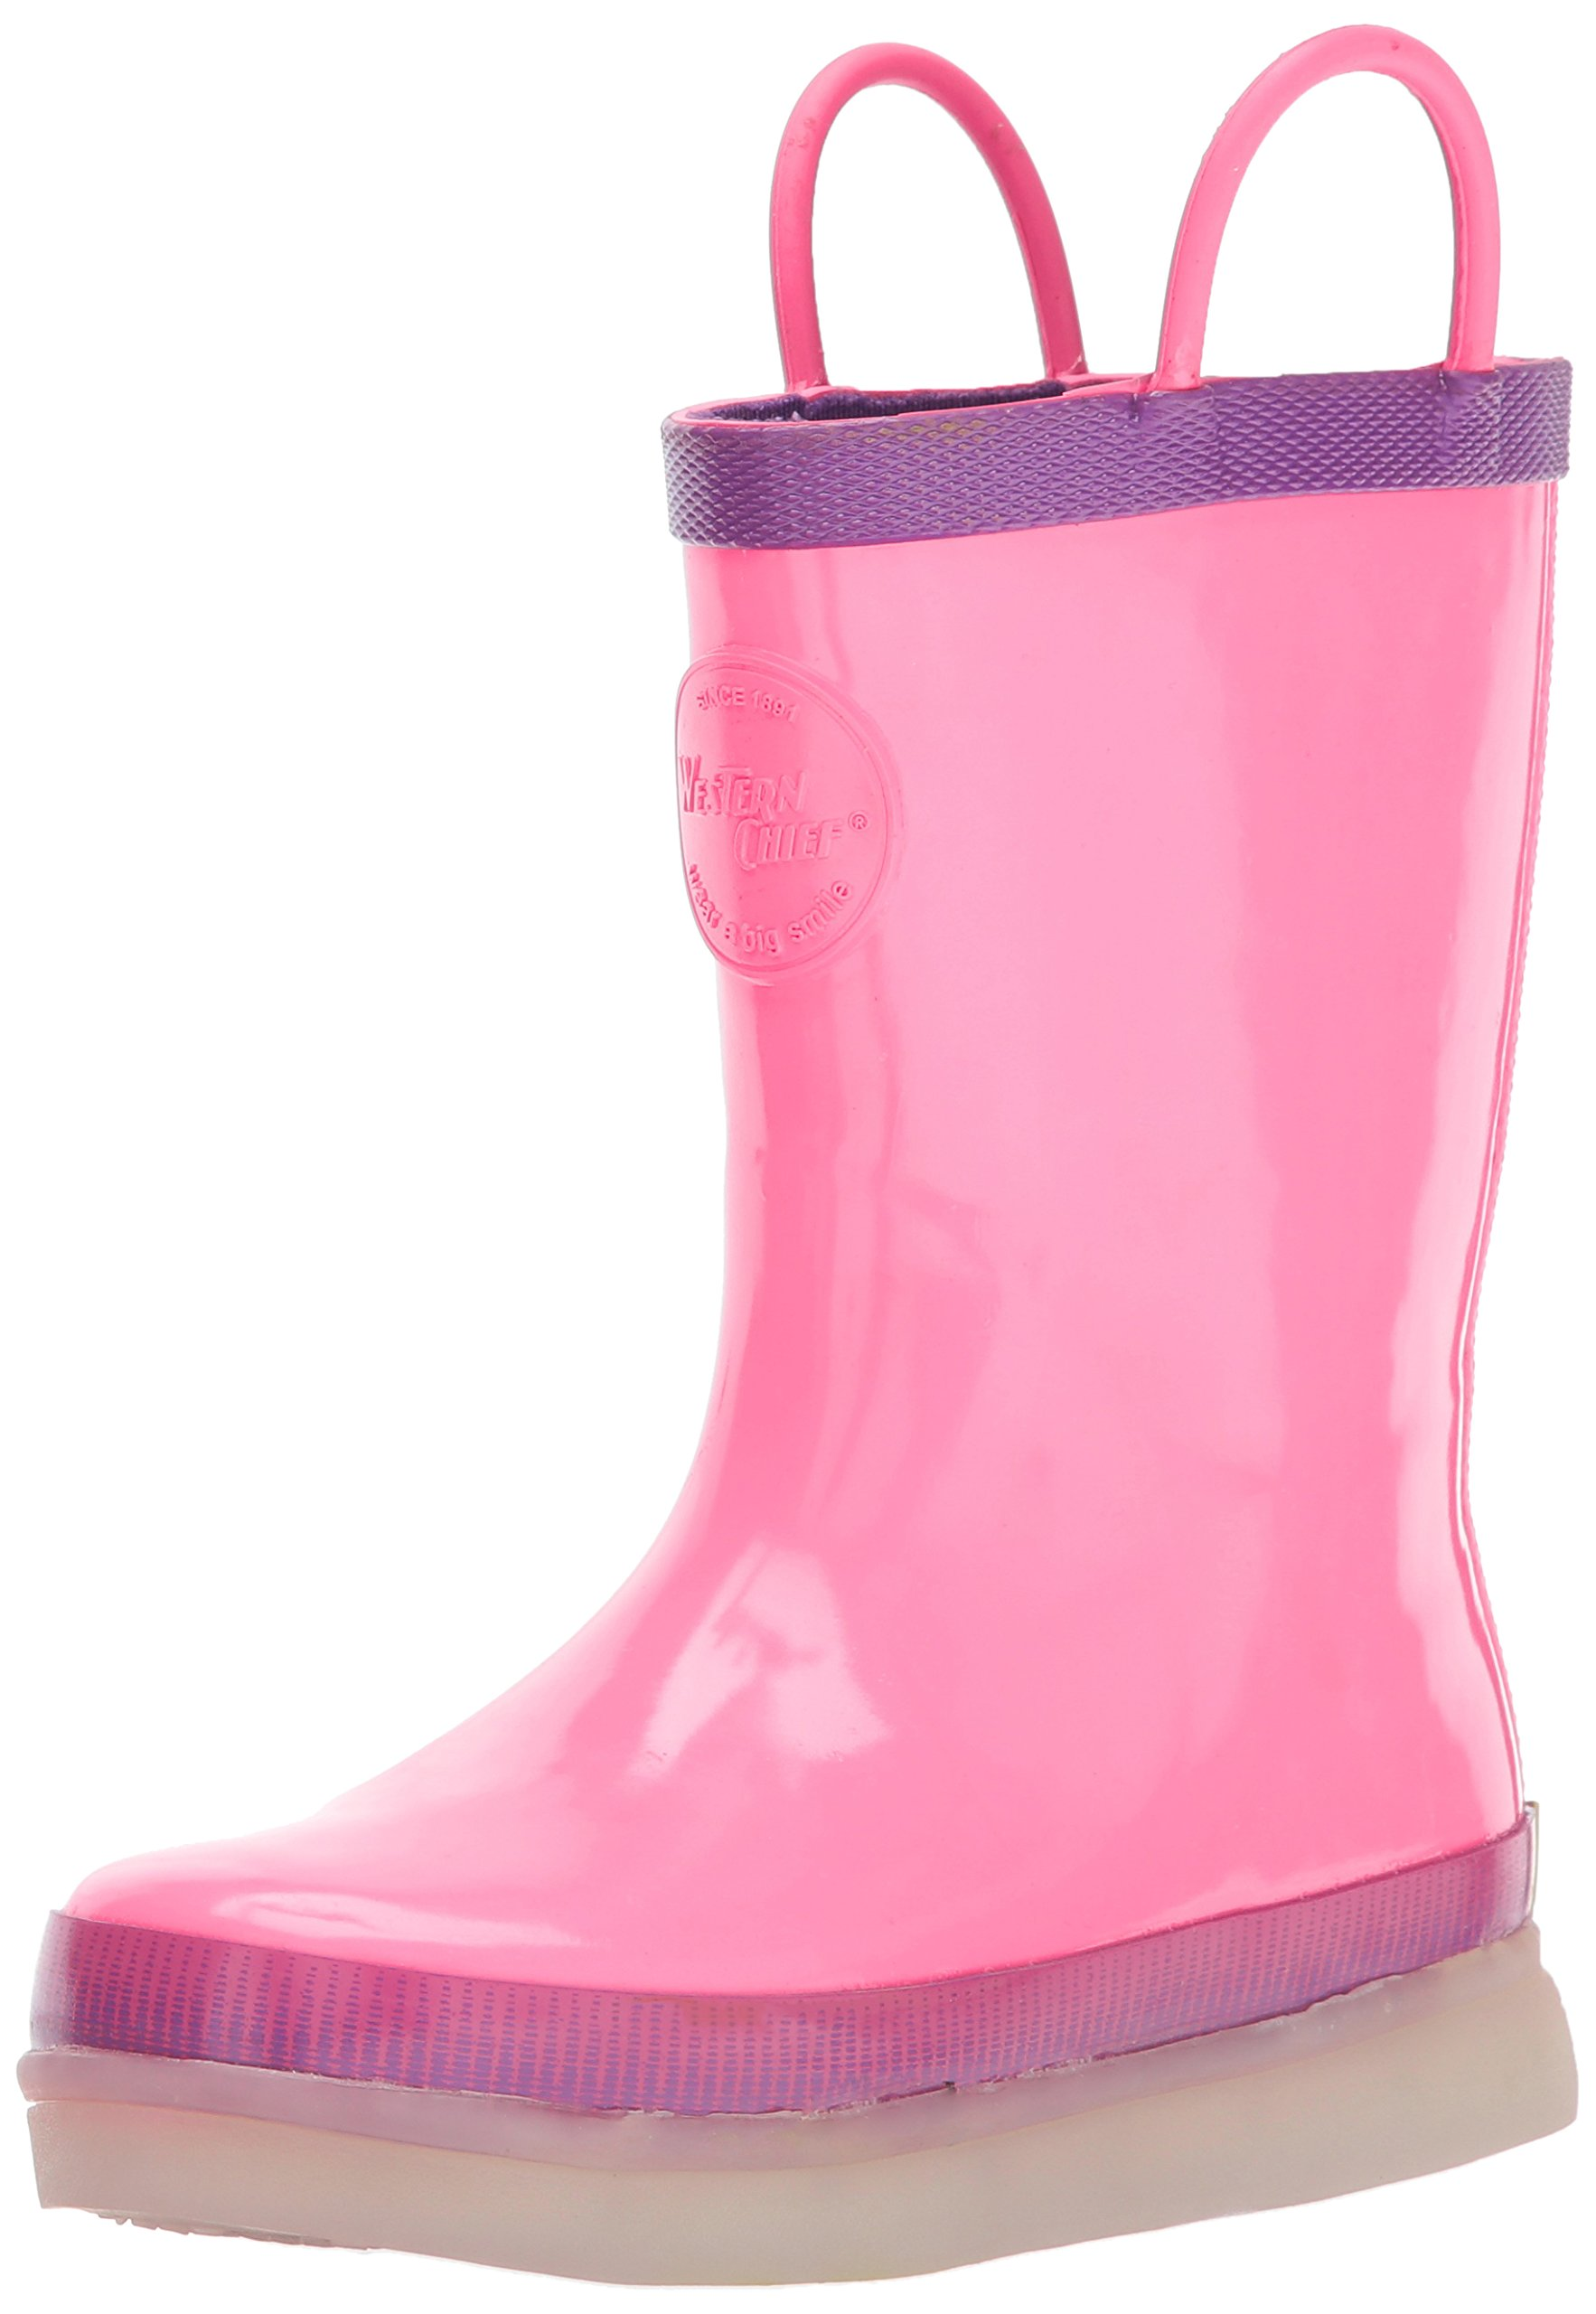 Western Chief Kids Rechargeable LED Rain Boot, Pink, 11 M US Little Kid